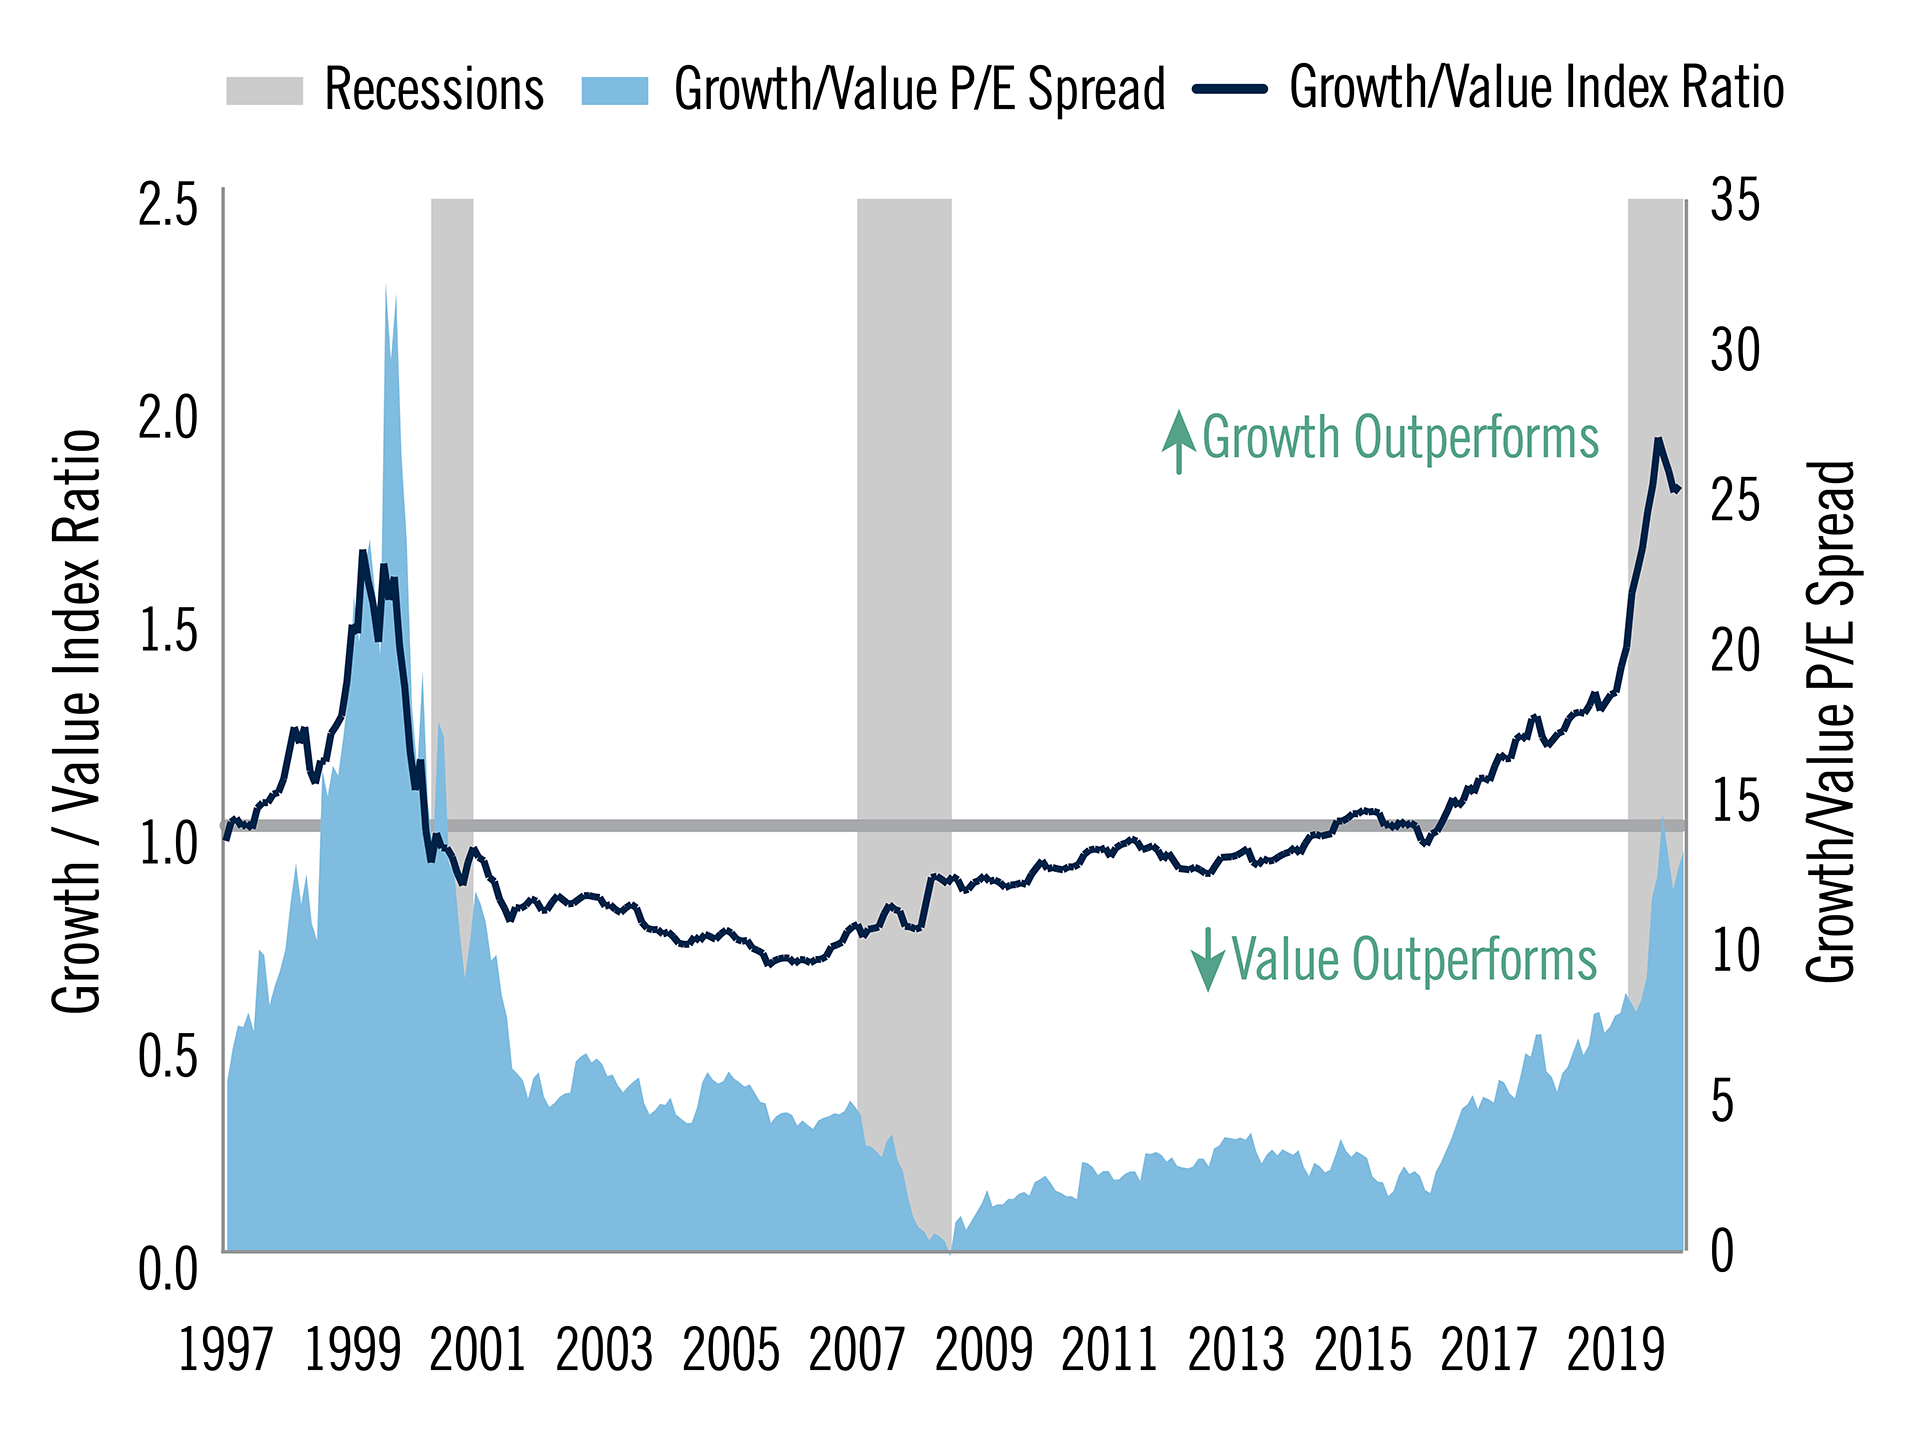 The chart shows the changes in the Growth/Value P/E Spread and the Growth/Value Index Ratio from 1997 through 2020, with current levels historic highs.